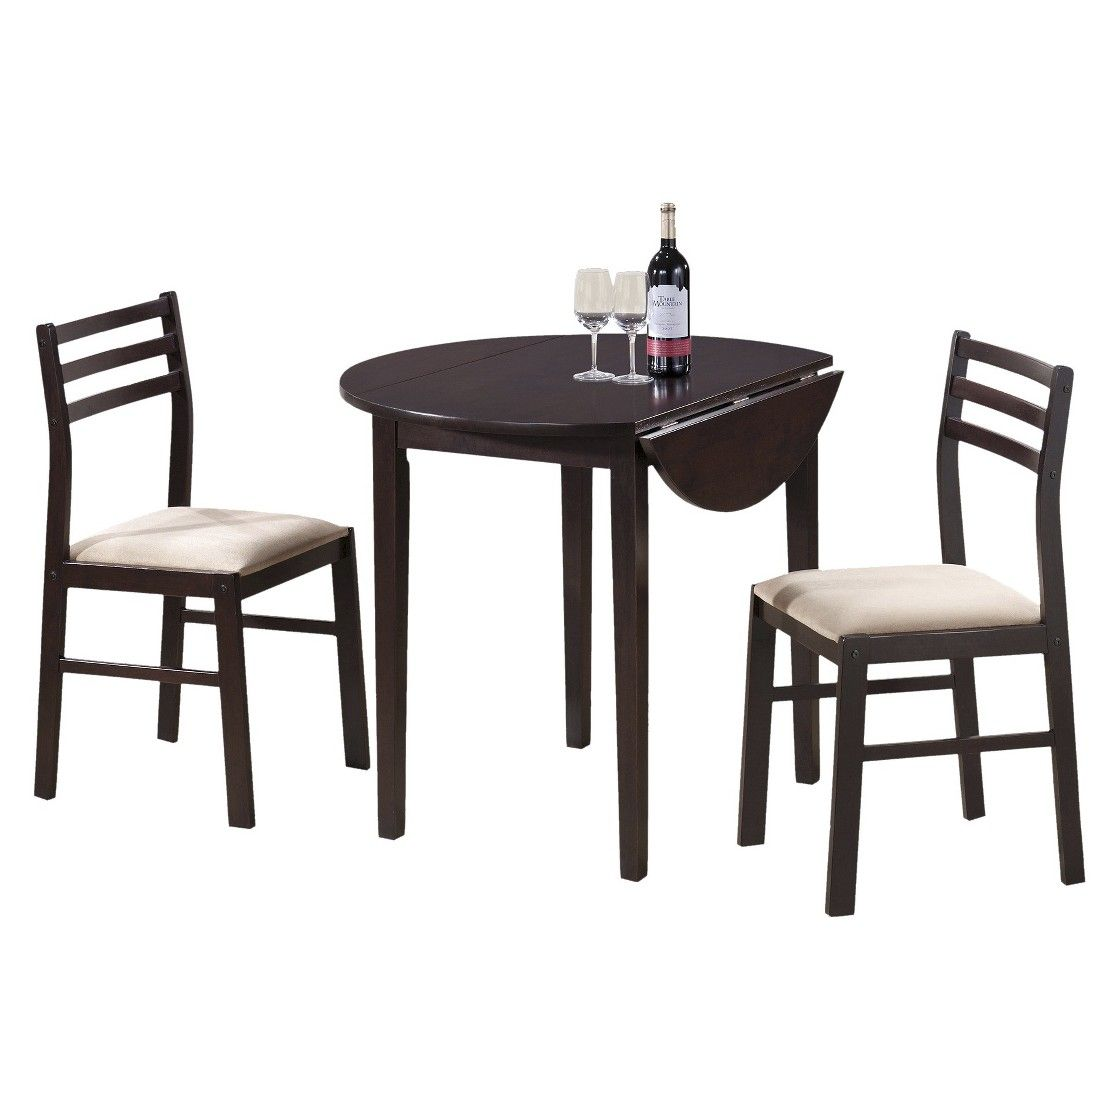 Monarch Specialties 3 Piece Drop leaf Dining Table Seat - Cappuccino